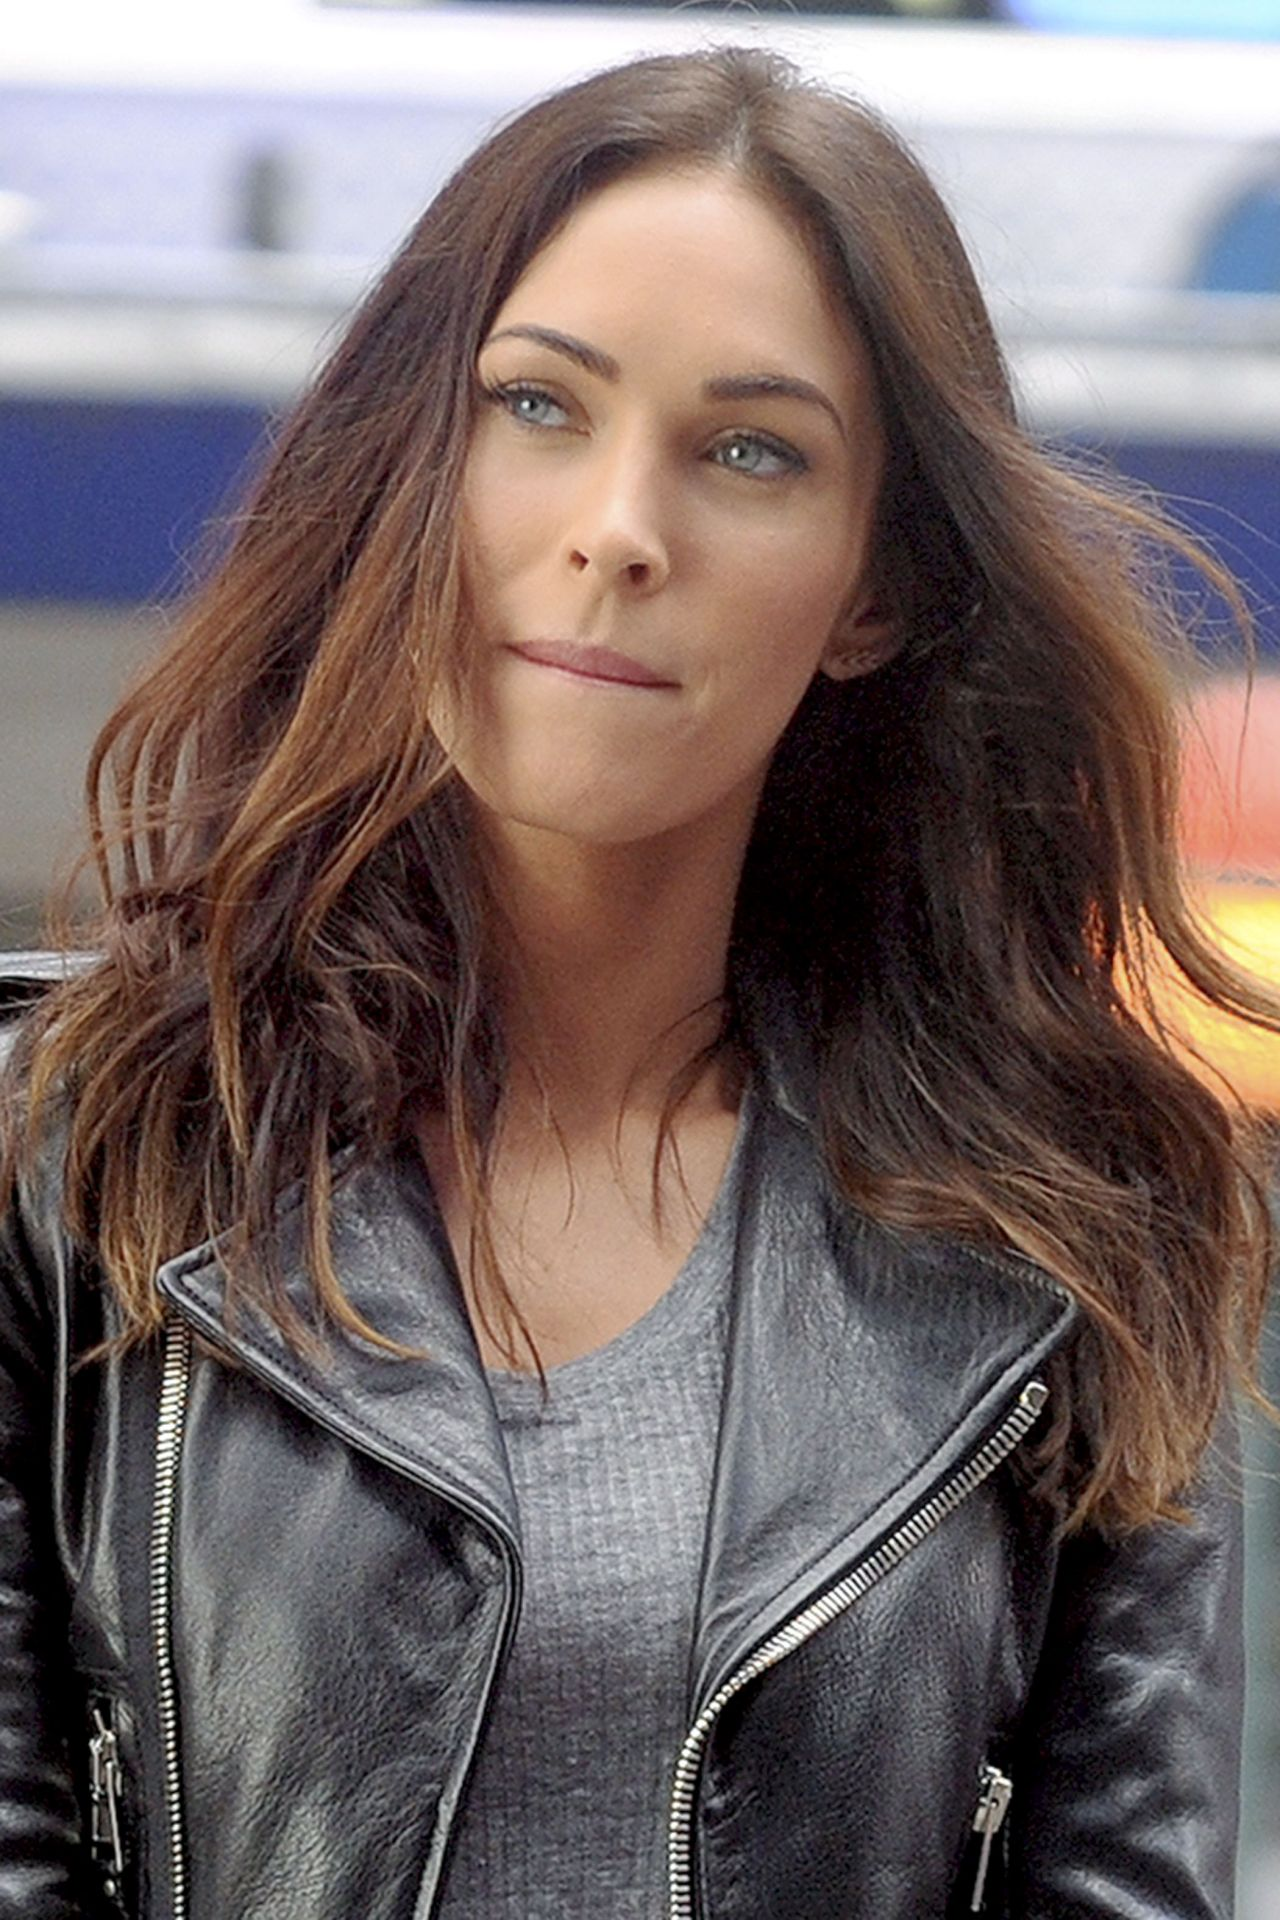 Megan Fox Teenage Mutant Ninja Turtles 2 Set Photos